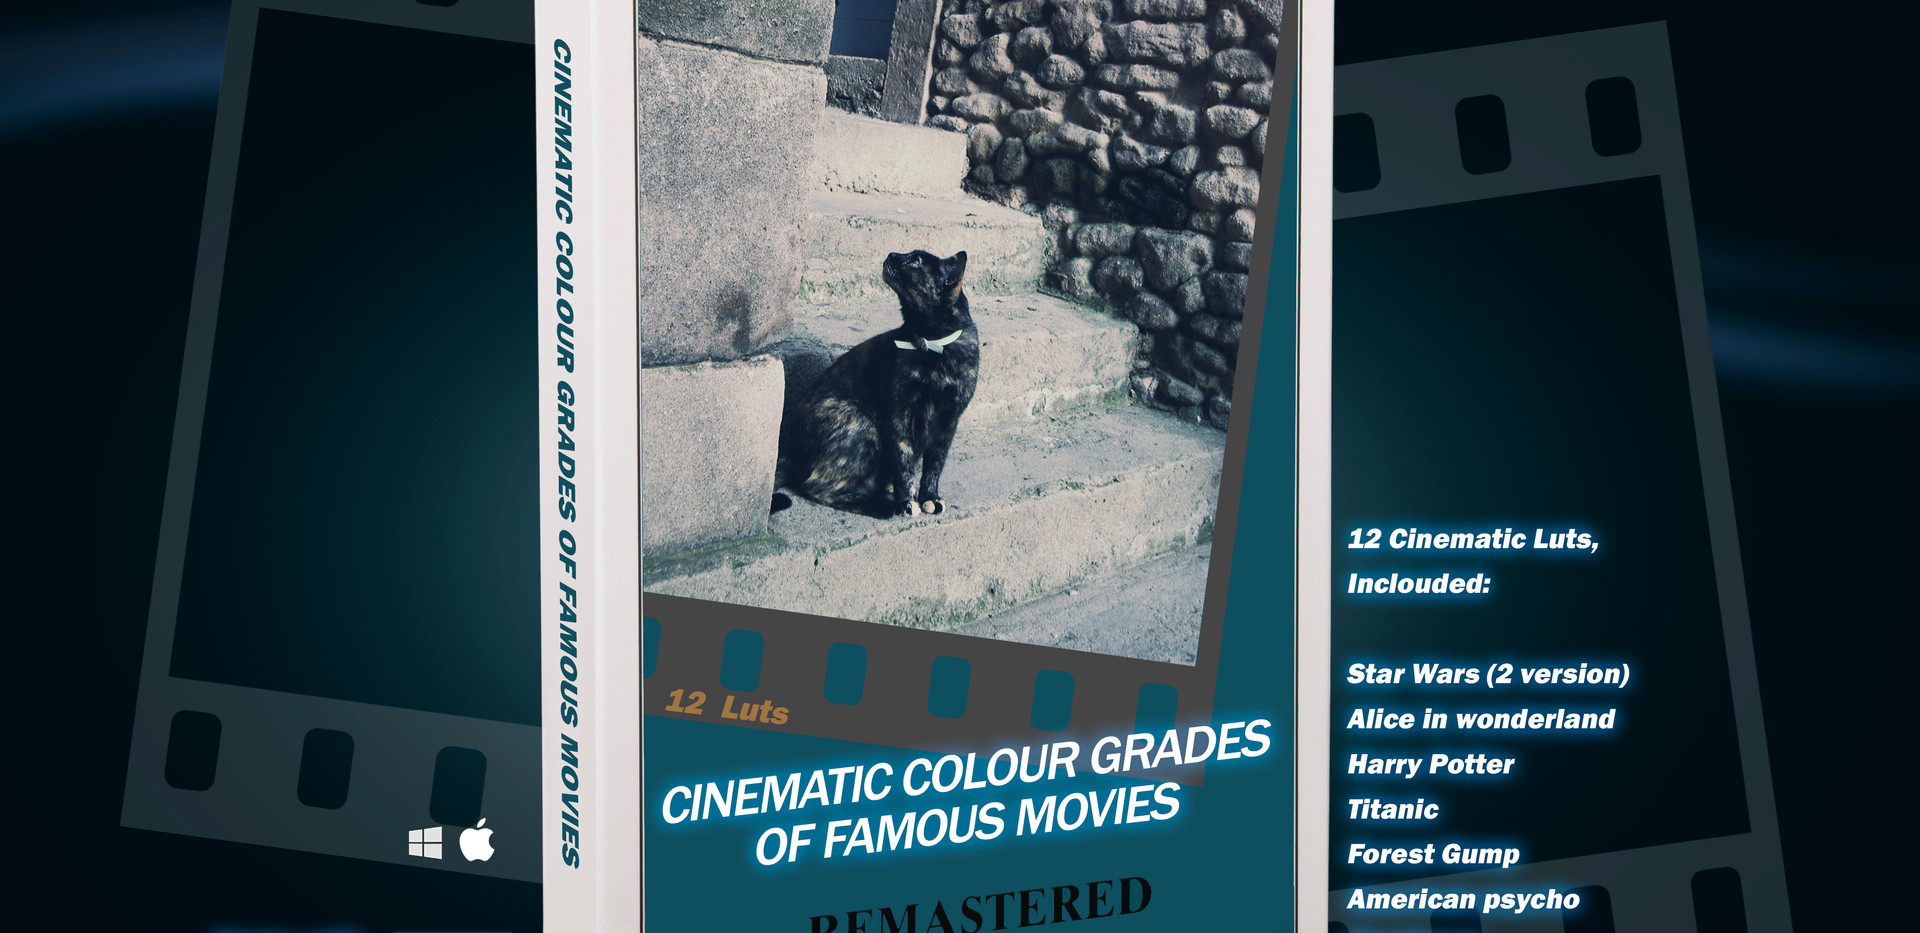 Cinematic colour grades of famous movies